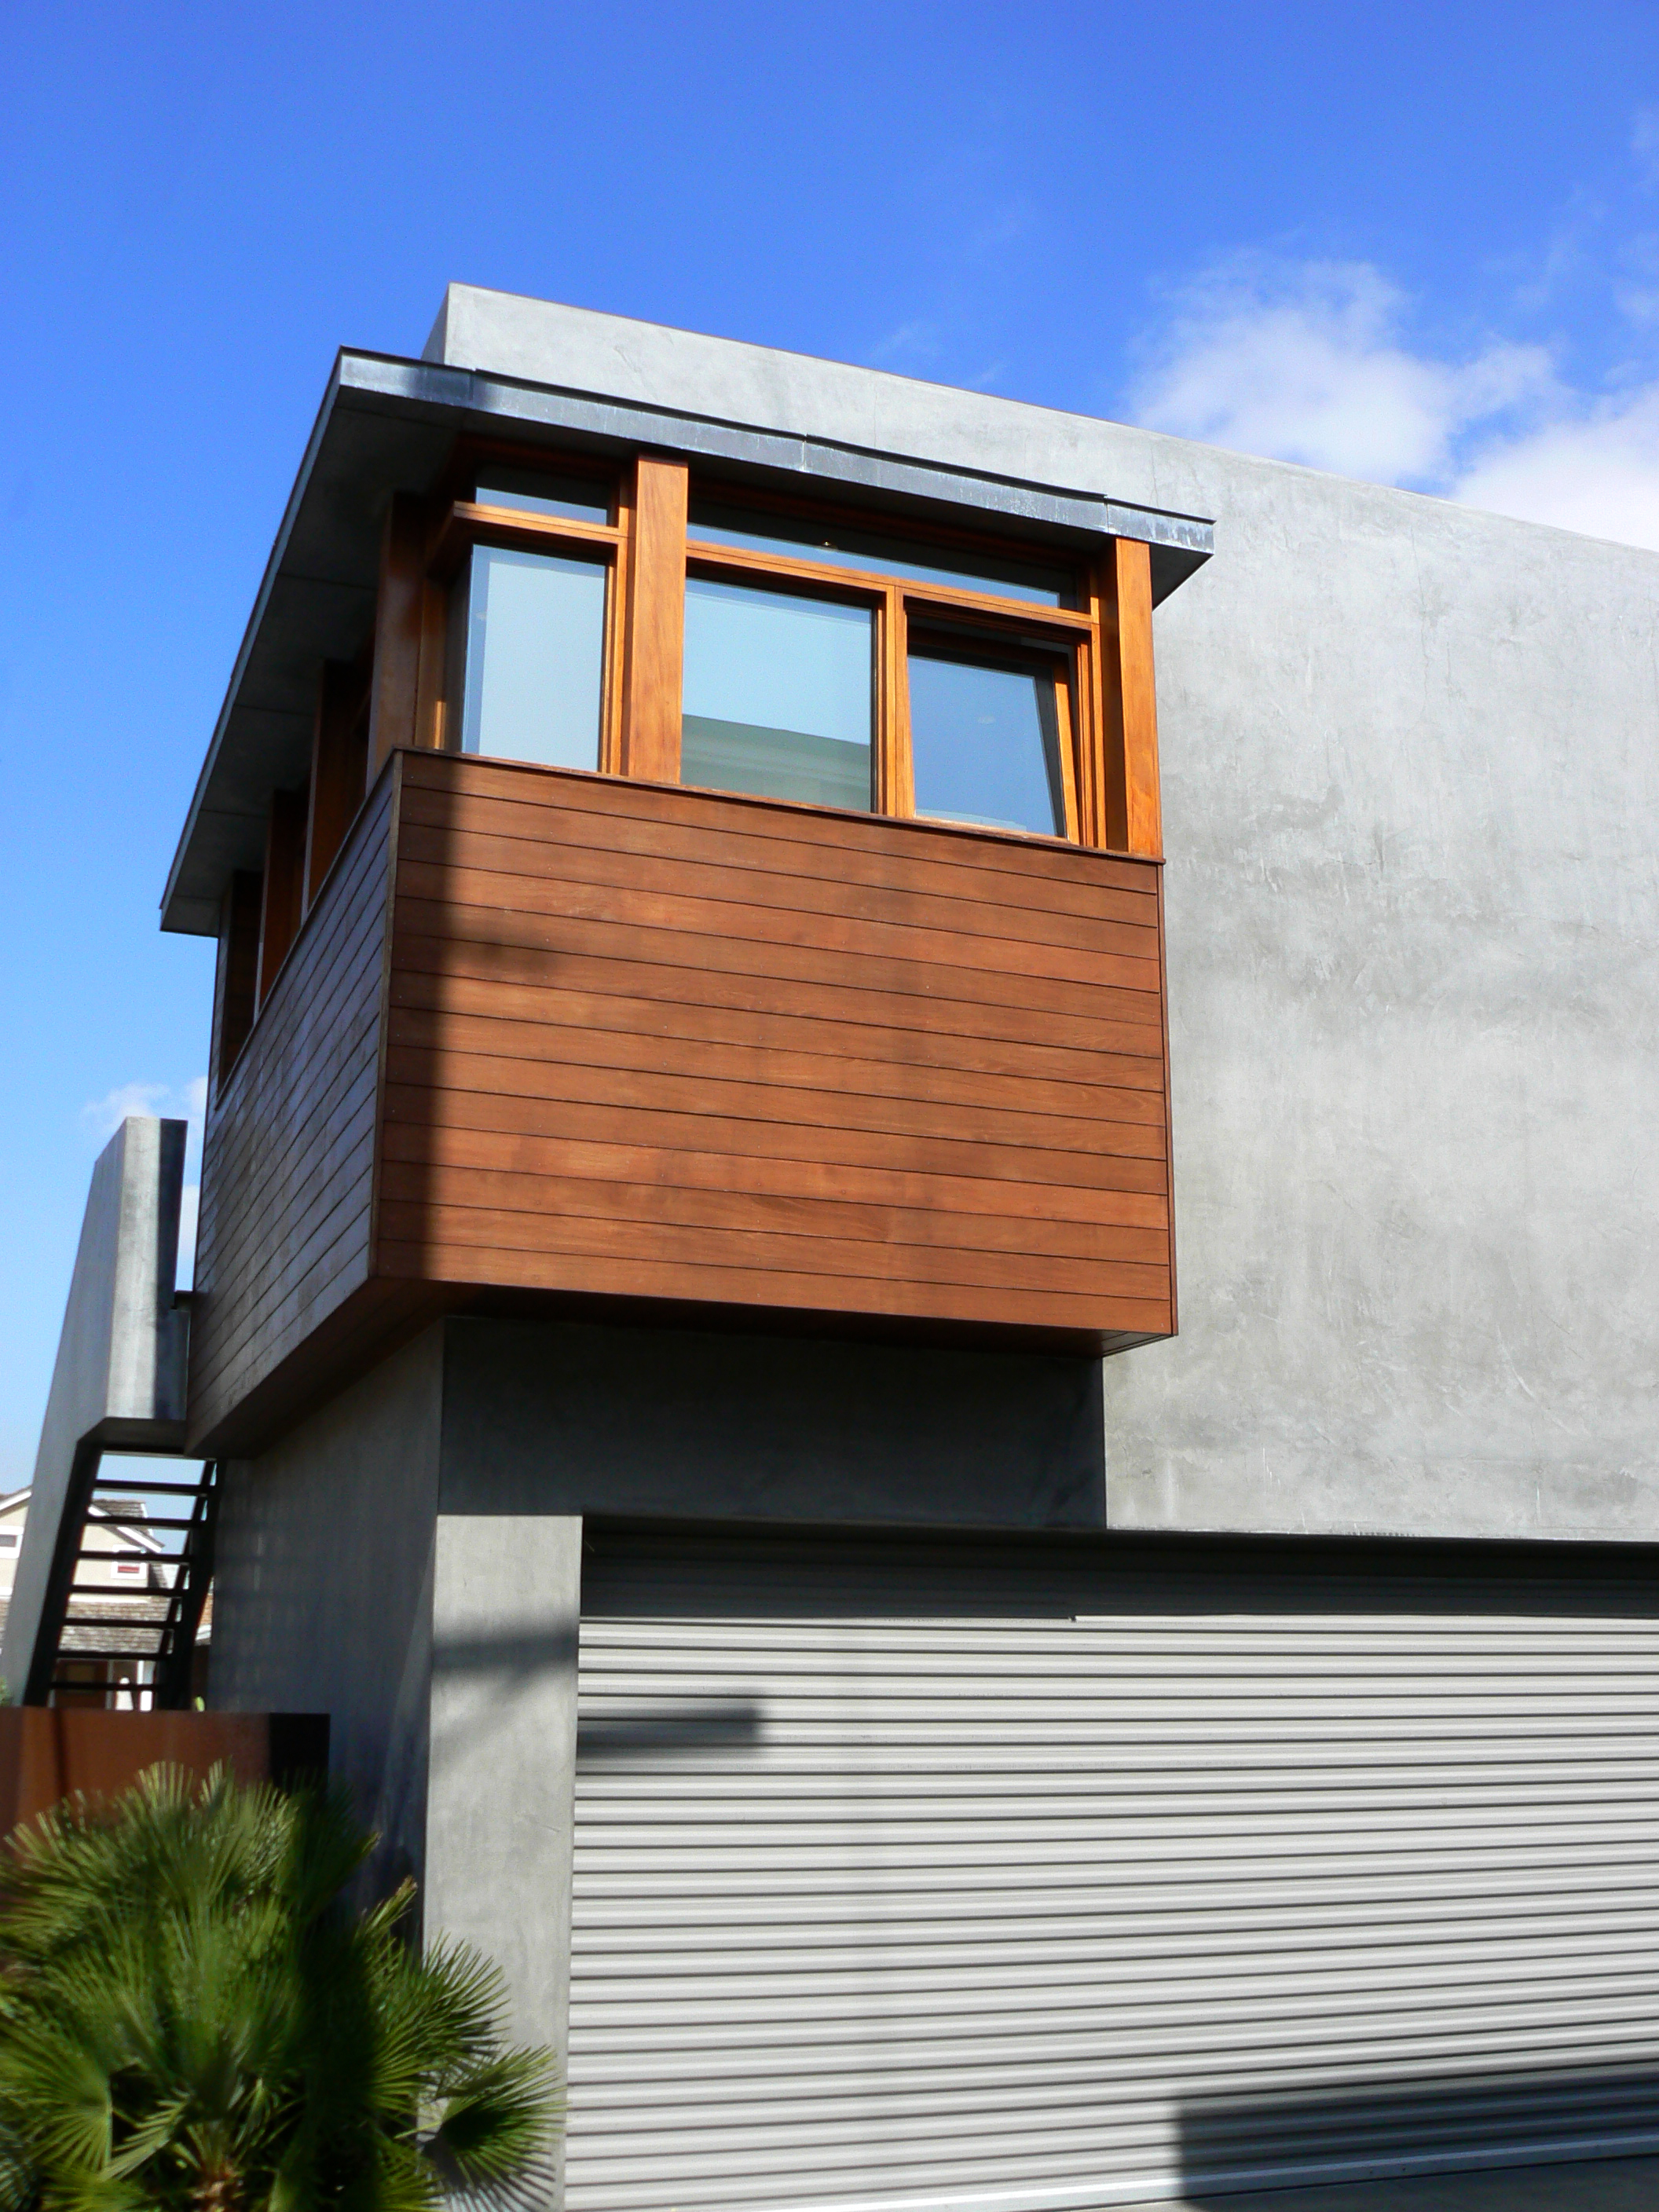 S.E.A.-Studio-Environmental-Architecture-David-Hertz-FAIA-Strand-House-Hermosa-Beach-sustainable-regenerative-restorative-design-residential-contemporary-modern-passive-systems-recycled-wood-concrete-green-building-South-Bay-ocean-view-studioea-19.jpg